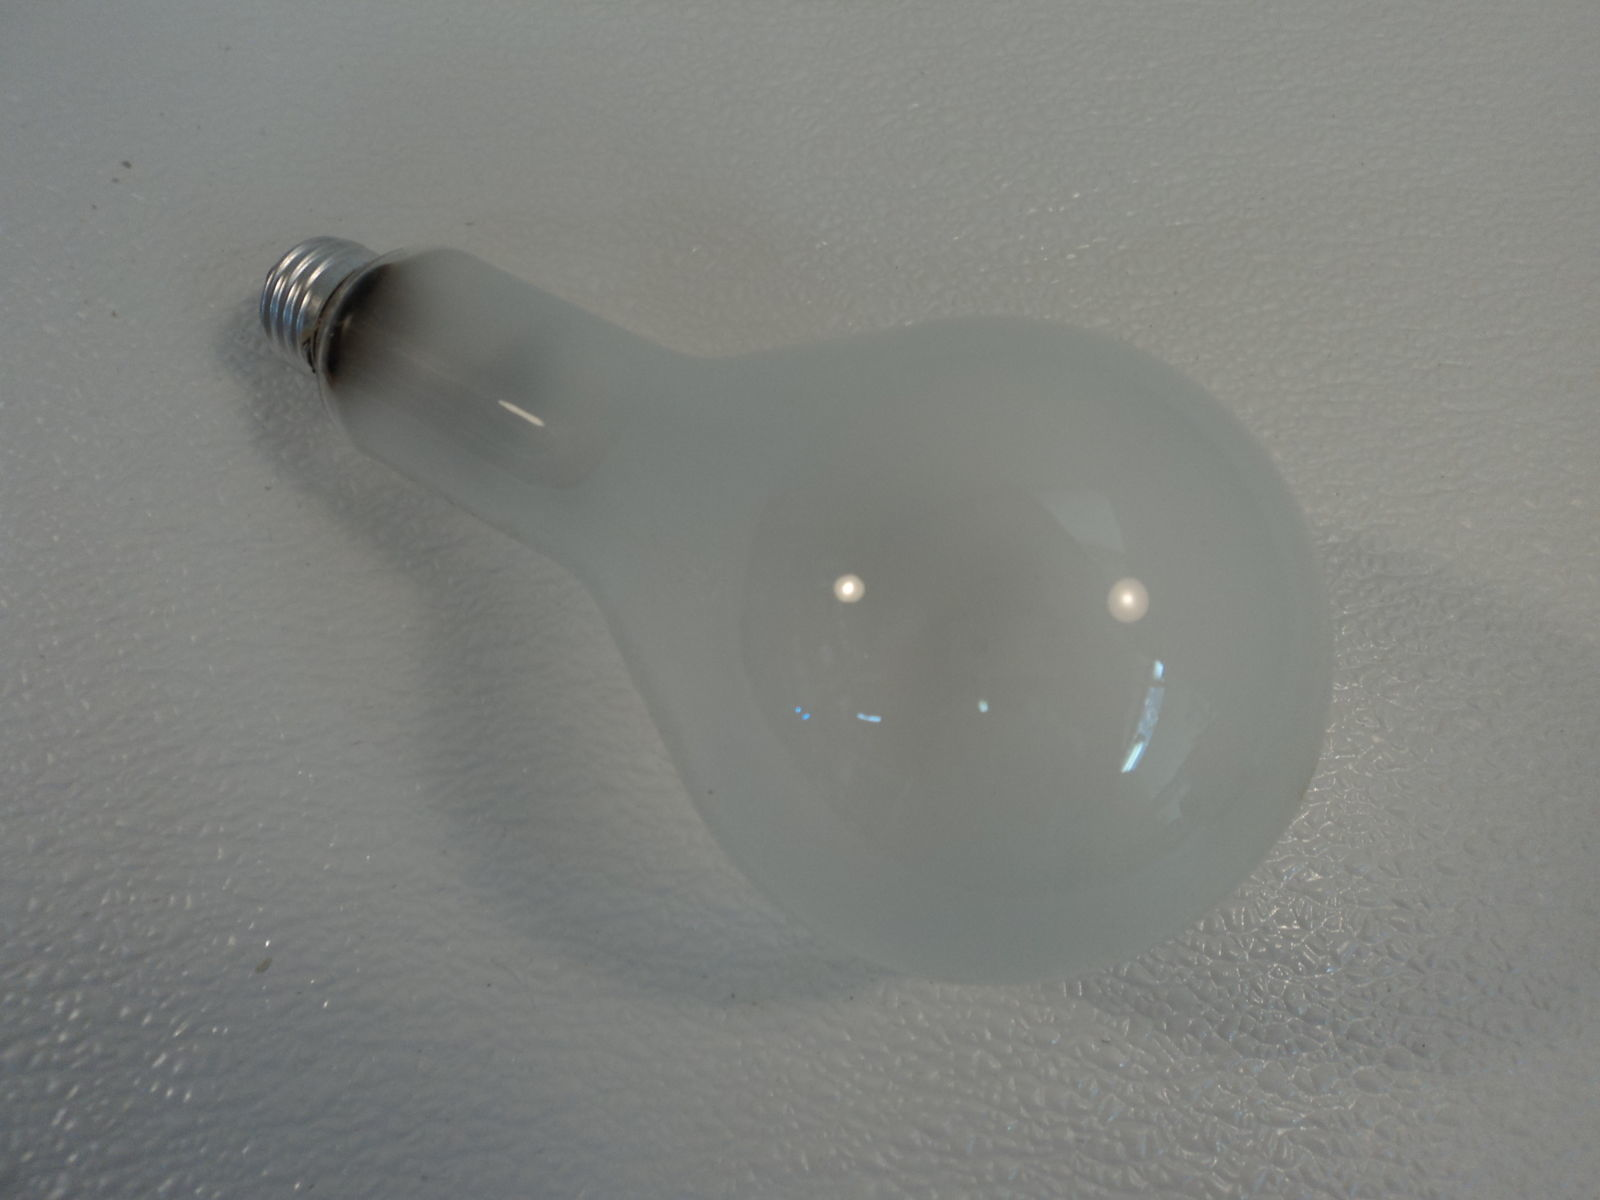 Philips 300 Watt Frost Incandescent Lamp Frost PS30 Series 300M PS30 IF 120v130v